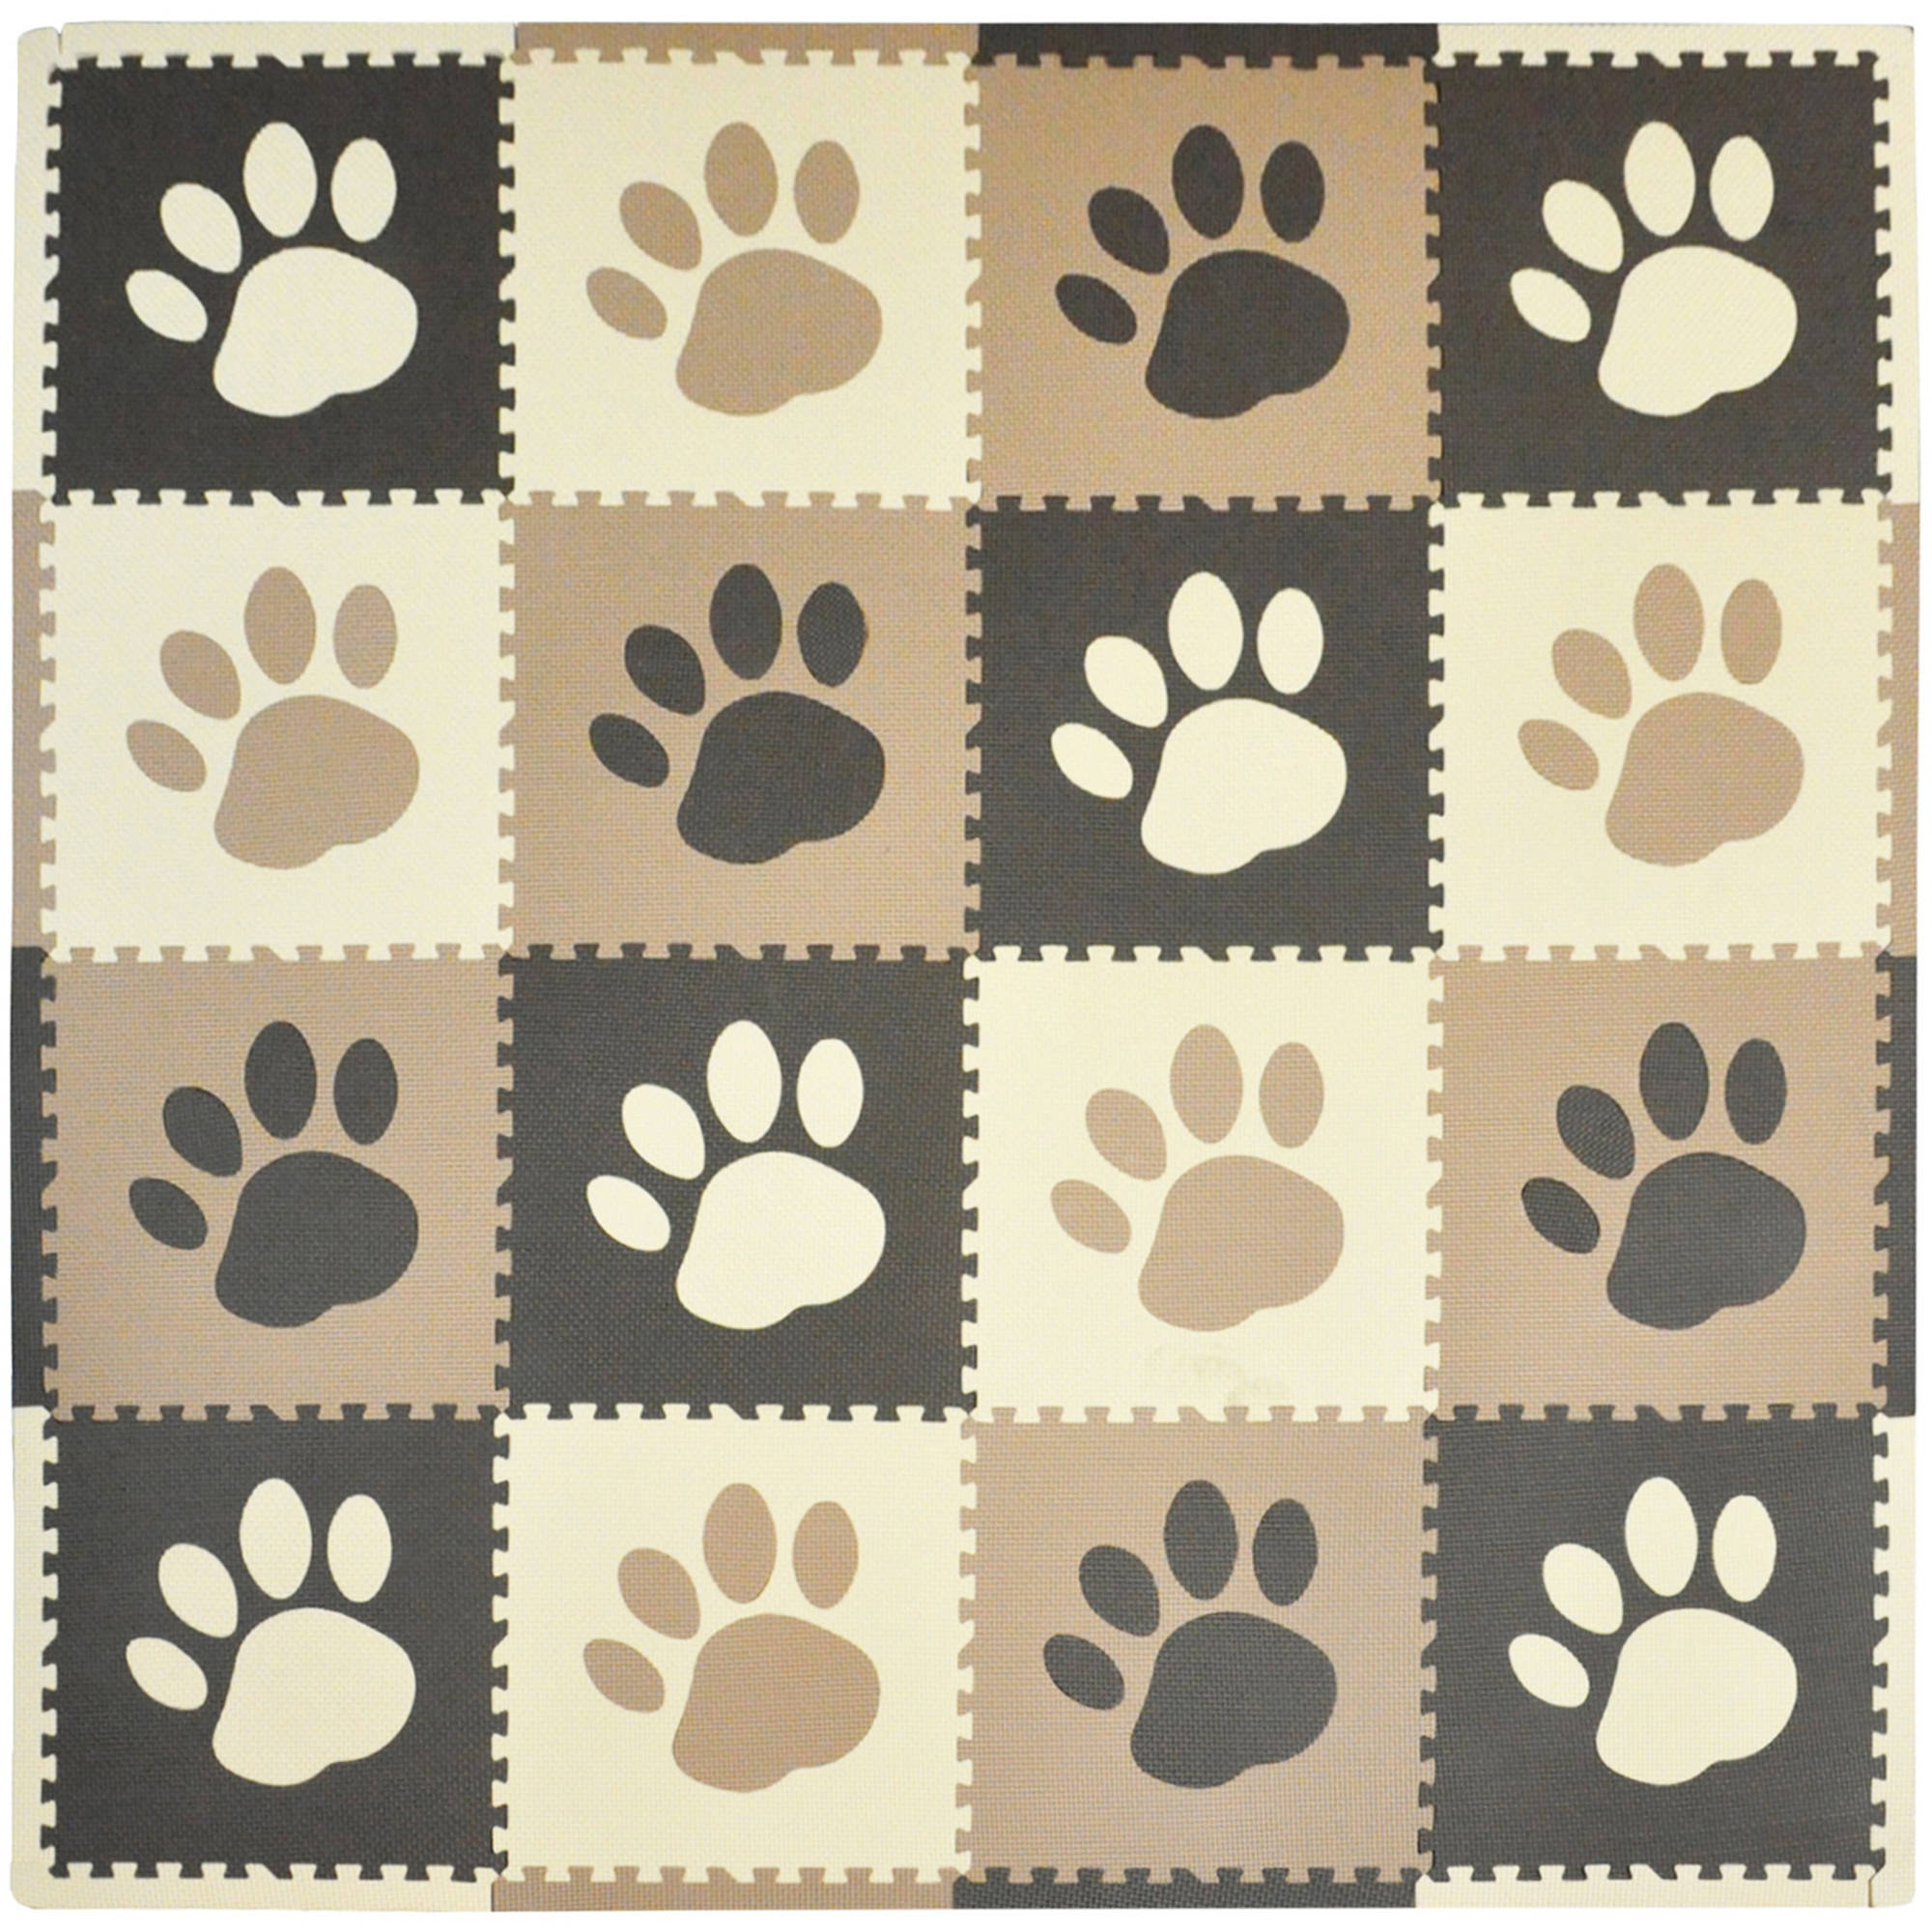 Tadpoles Playmat Set, 16pc, Pawprint, Brown